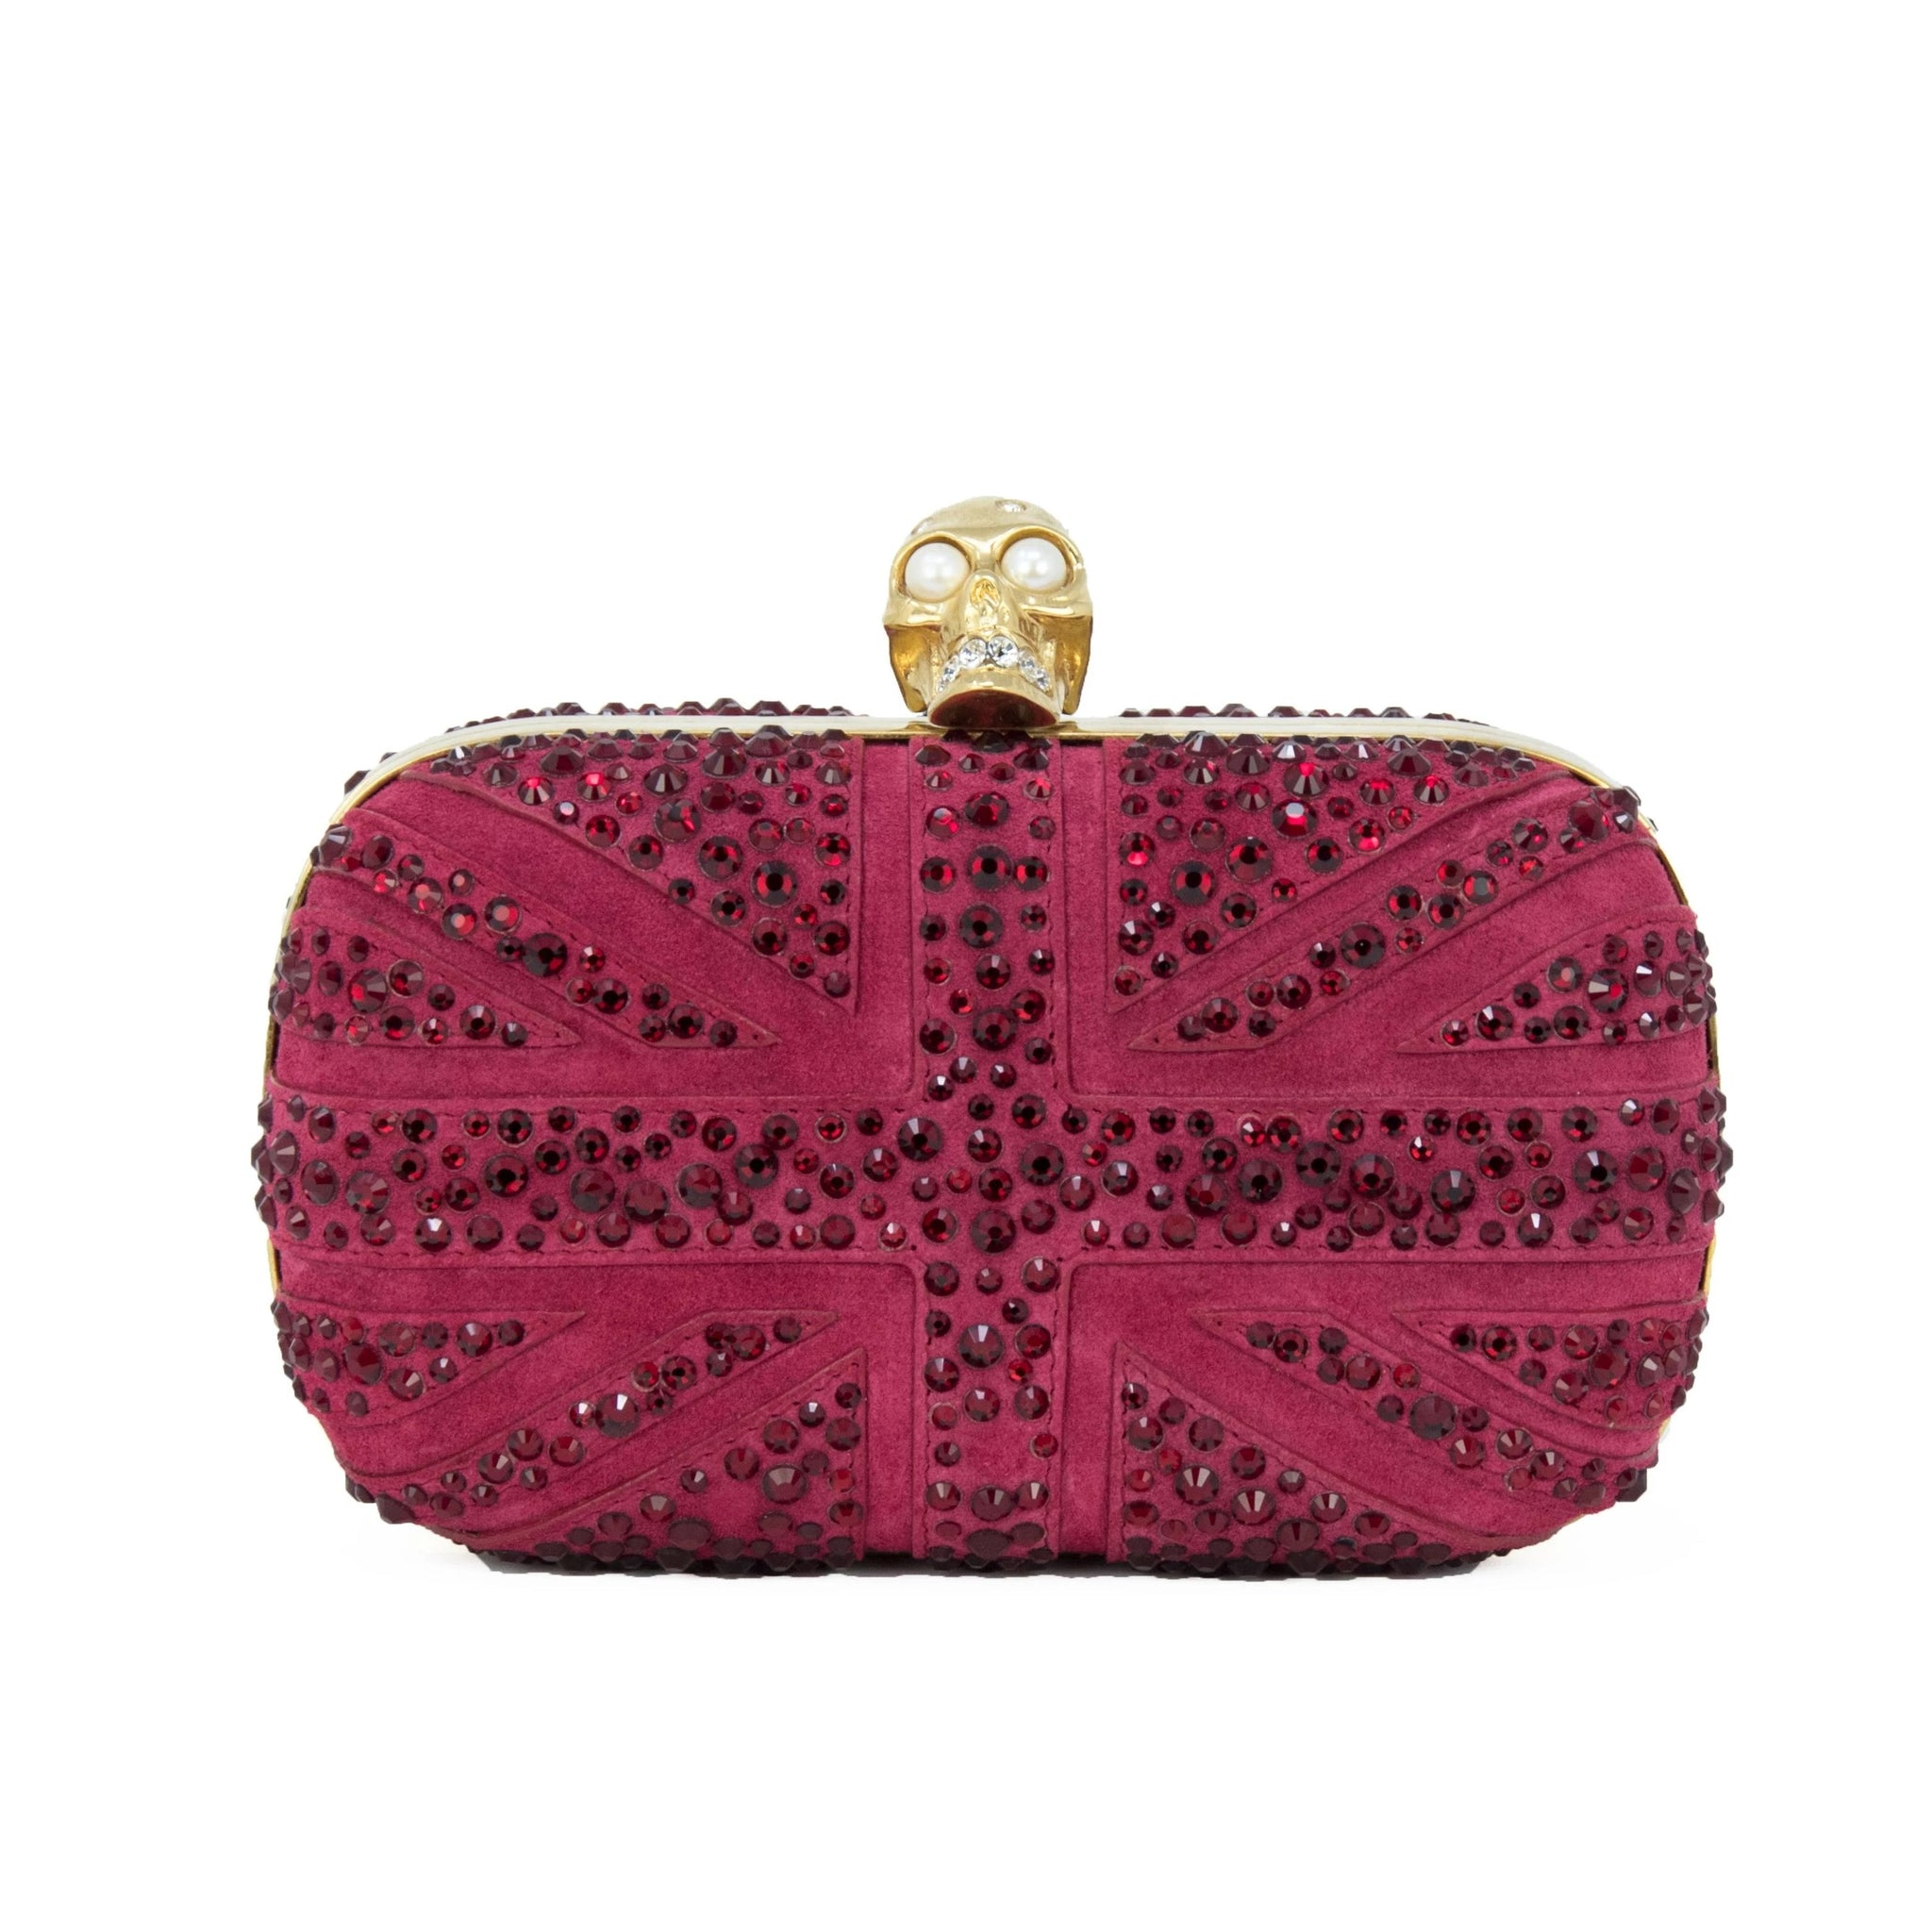 Alexander McQueen Dark Red Suede British Flag Clutch